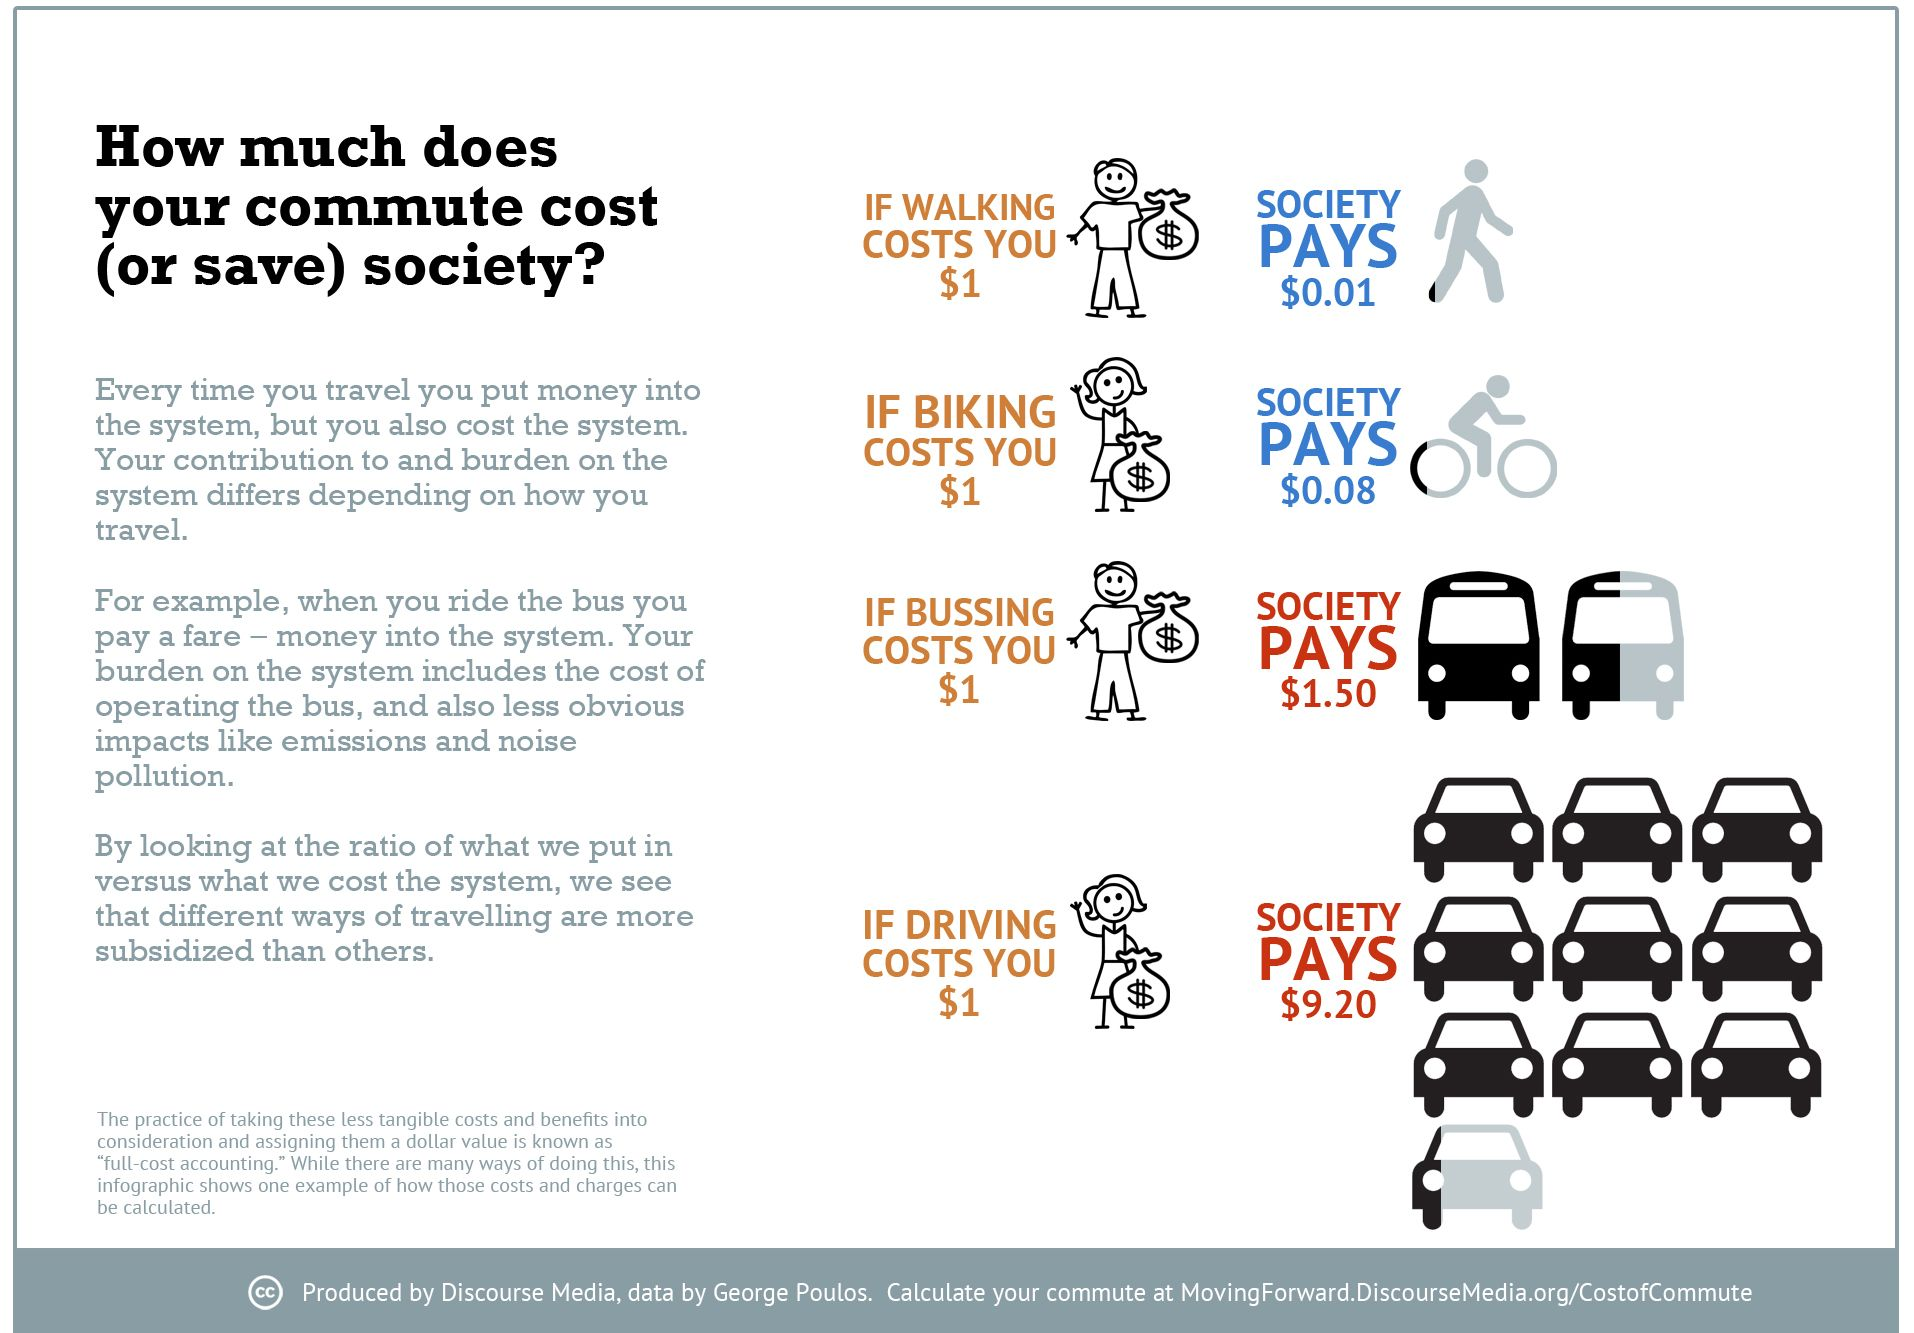 How Much Does YOUR Commute Cost Society Traveling by